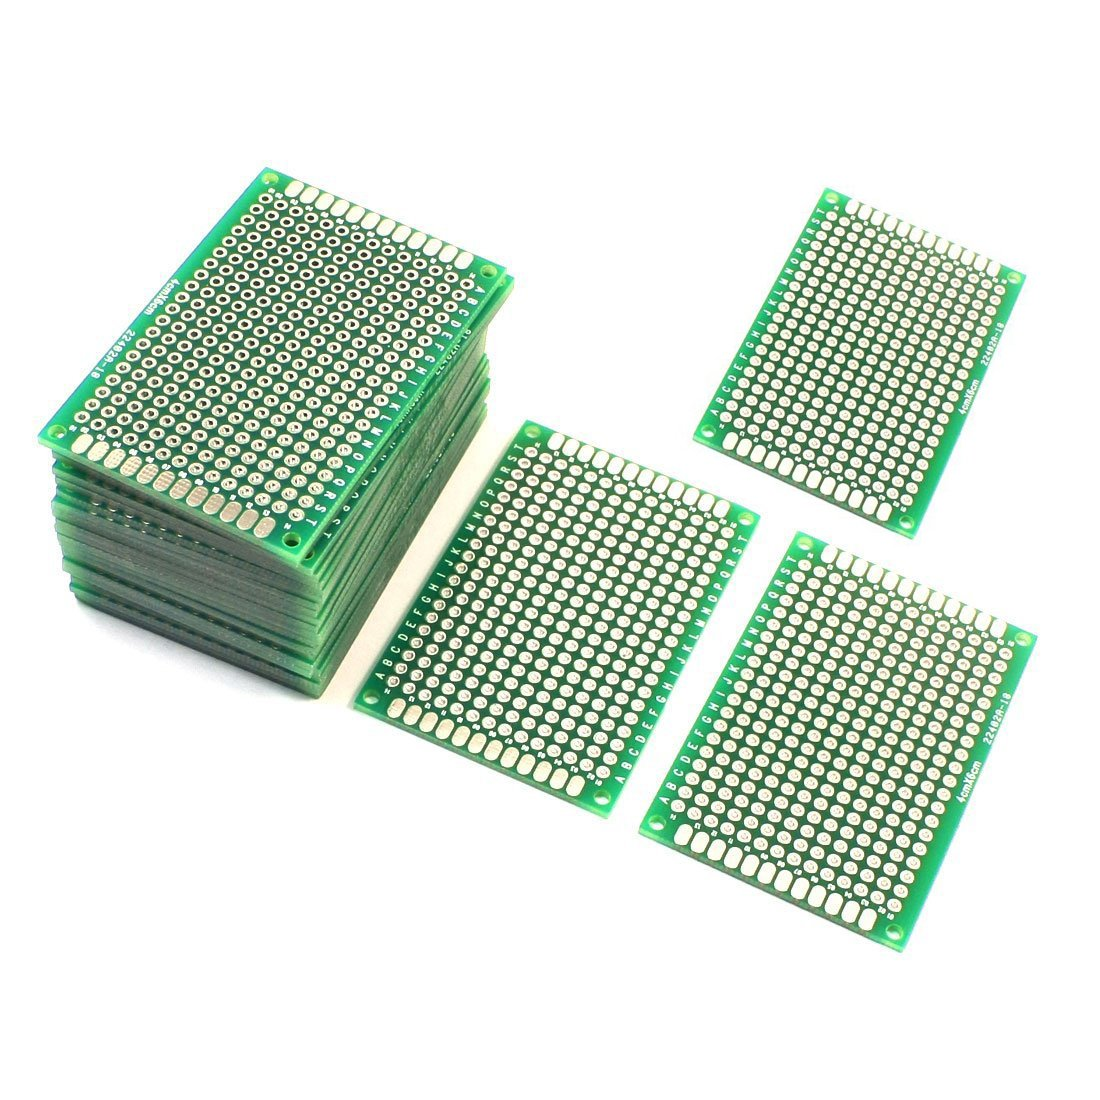 Ellen 20 Pcs 4 X 6 Cm Double Side Diy Prototype Board Pcb Universal Doubleside Printed Circuit Electronics Test